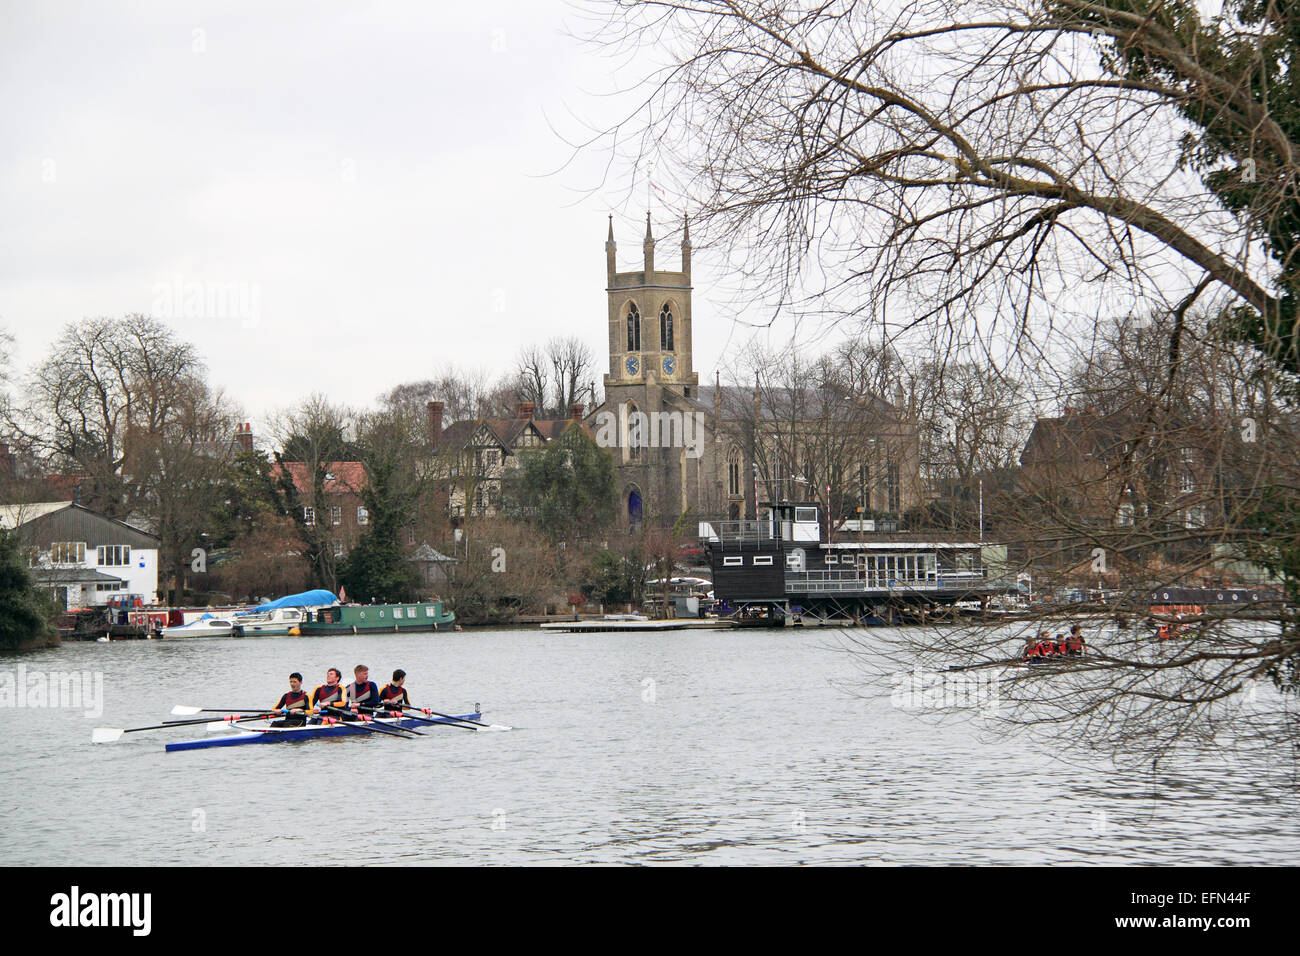 Norwich School J18A.4x-. Hampton Head (Junior 4s and 8s) rowing event.  River Thames, Hurst Park, East Molesey, - Stock Image